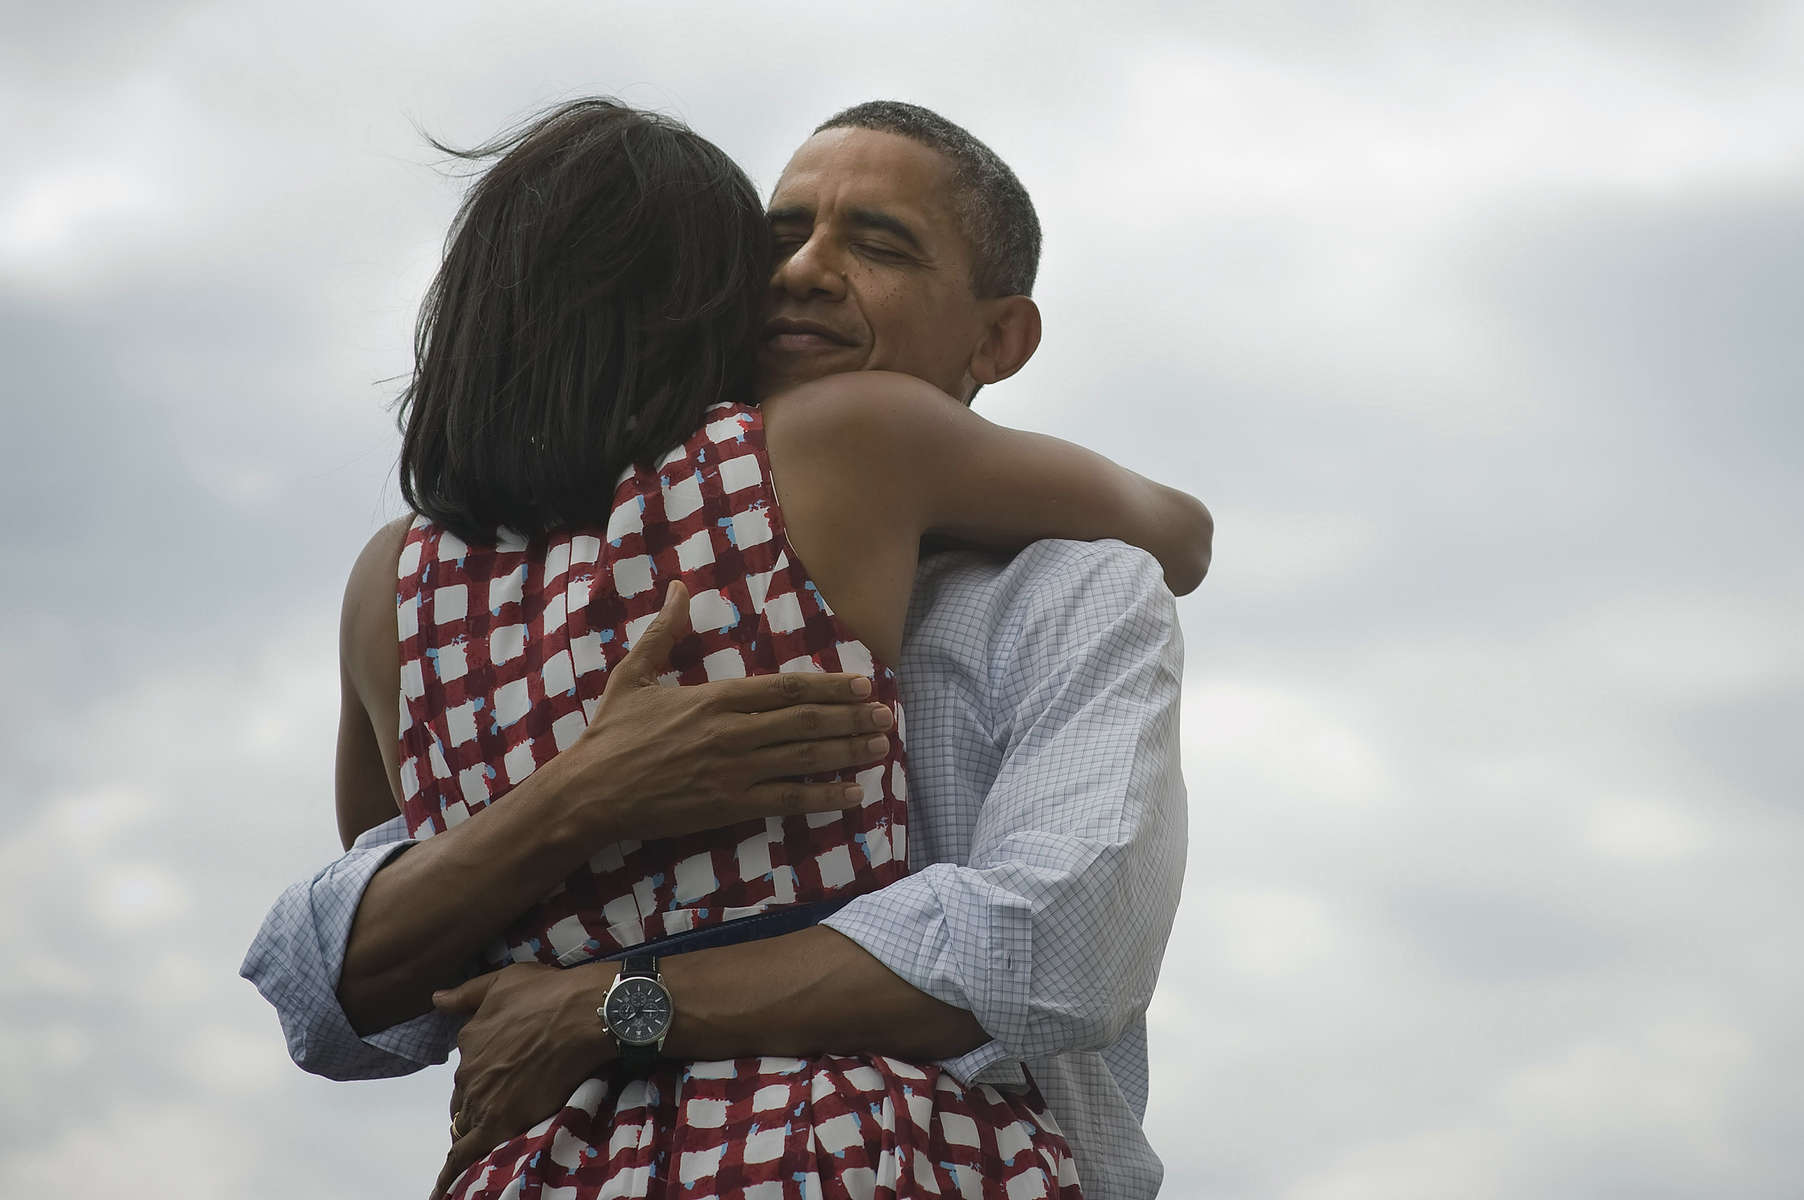 August 15, 2012- DUBUQUE, IA: President Barack Obama and First Lady Michelle Obama embrace onstage at an event in Dubuque, IA. (Scout Tufankjian for Obama for America/Polaris)